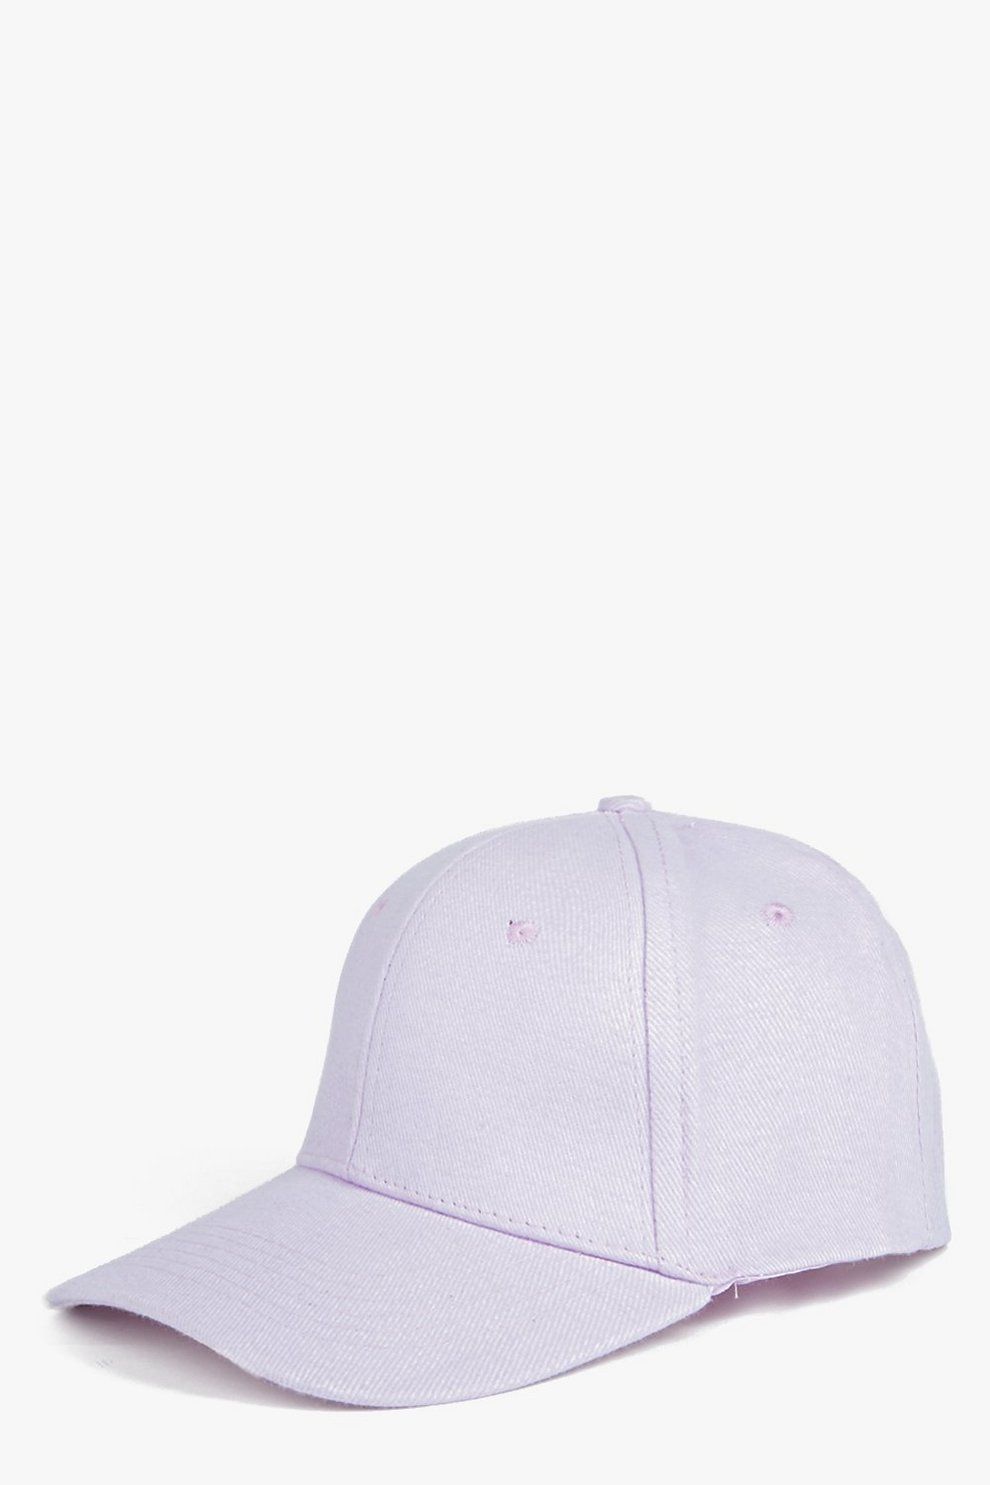 tilly basic baseball cap